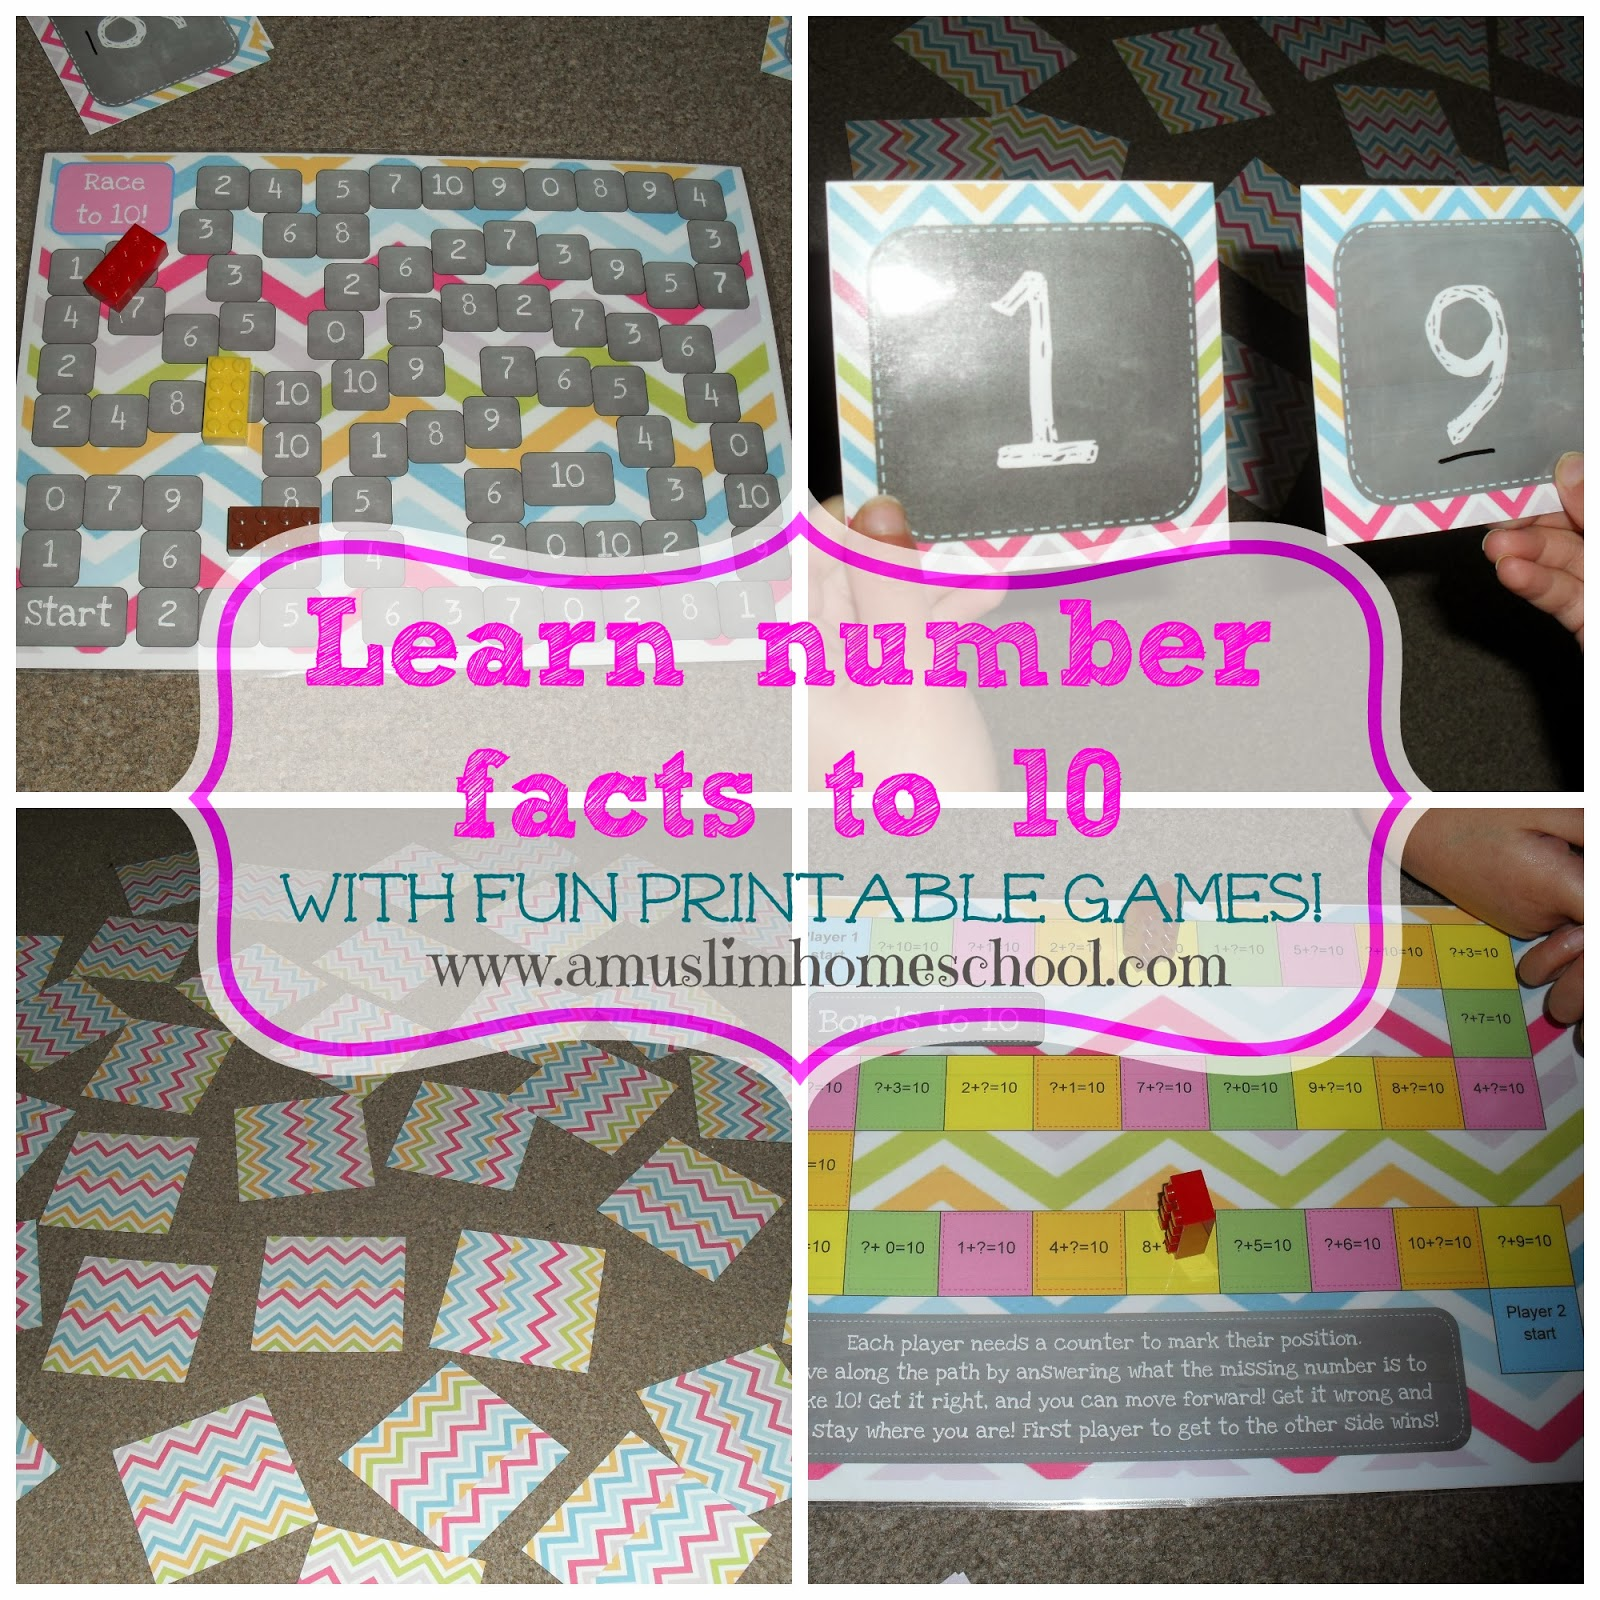 A Muslim Homeschool Fun Free Maths Games To Learn Number